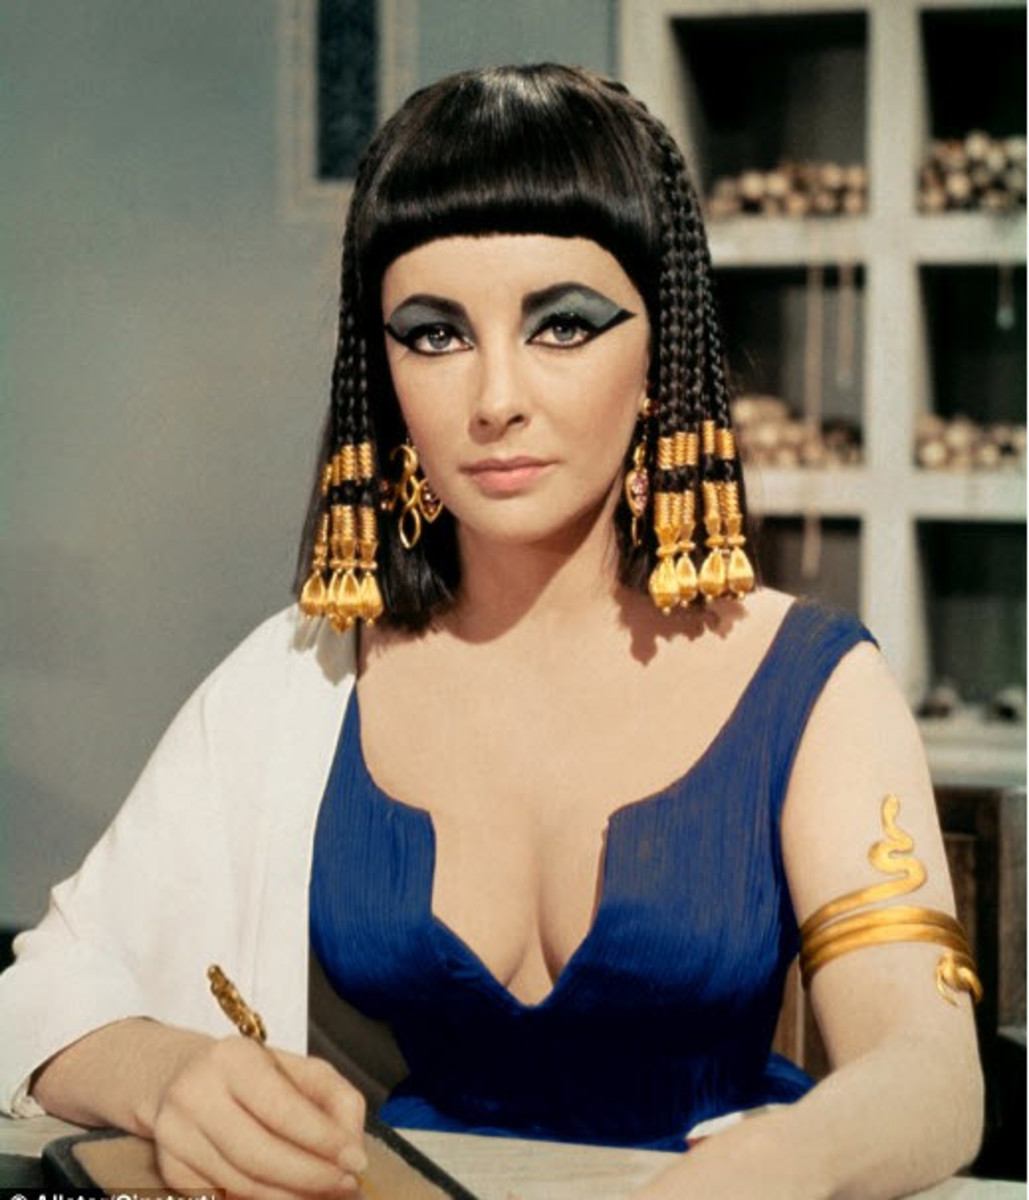 Cleopatra was born in 69 B.C. in Alexandria, Egypt. She died August 12, 30 B.C.  This hairstyle is her brand.